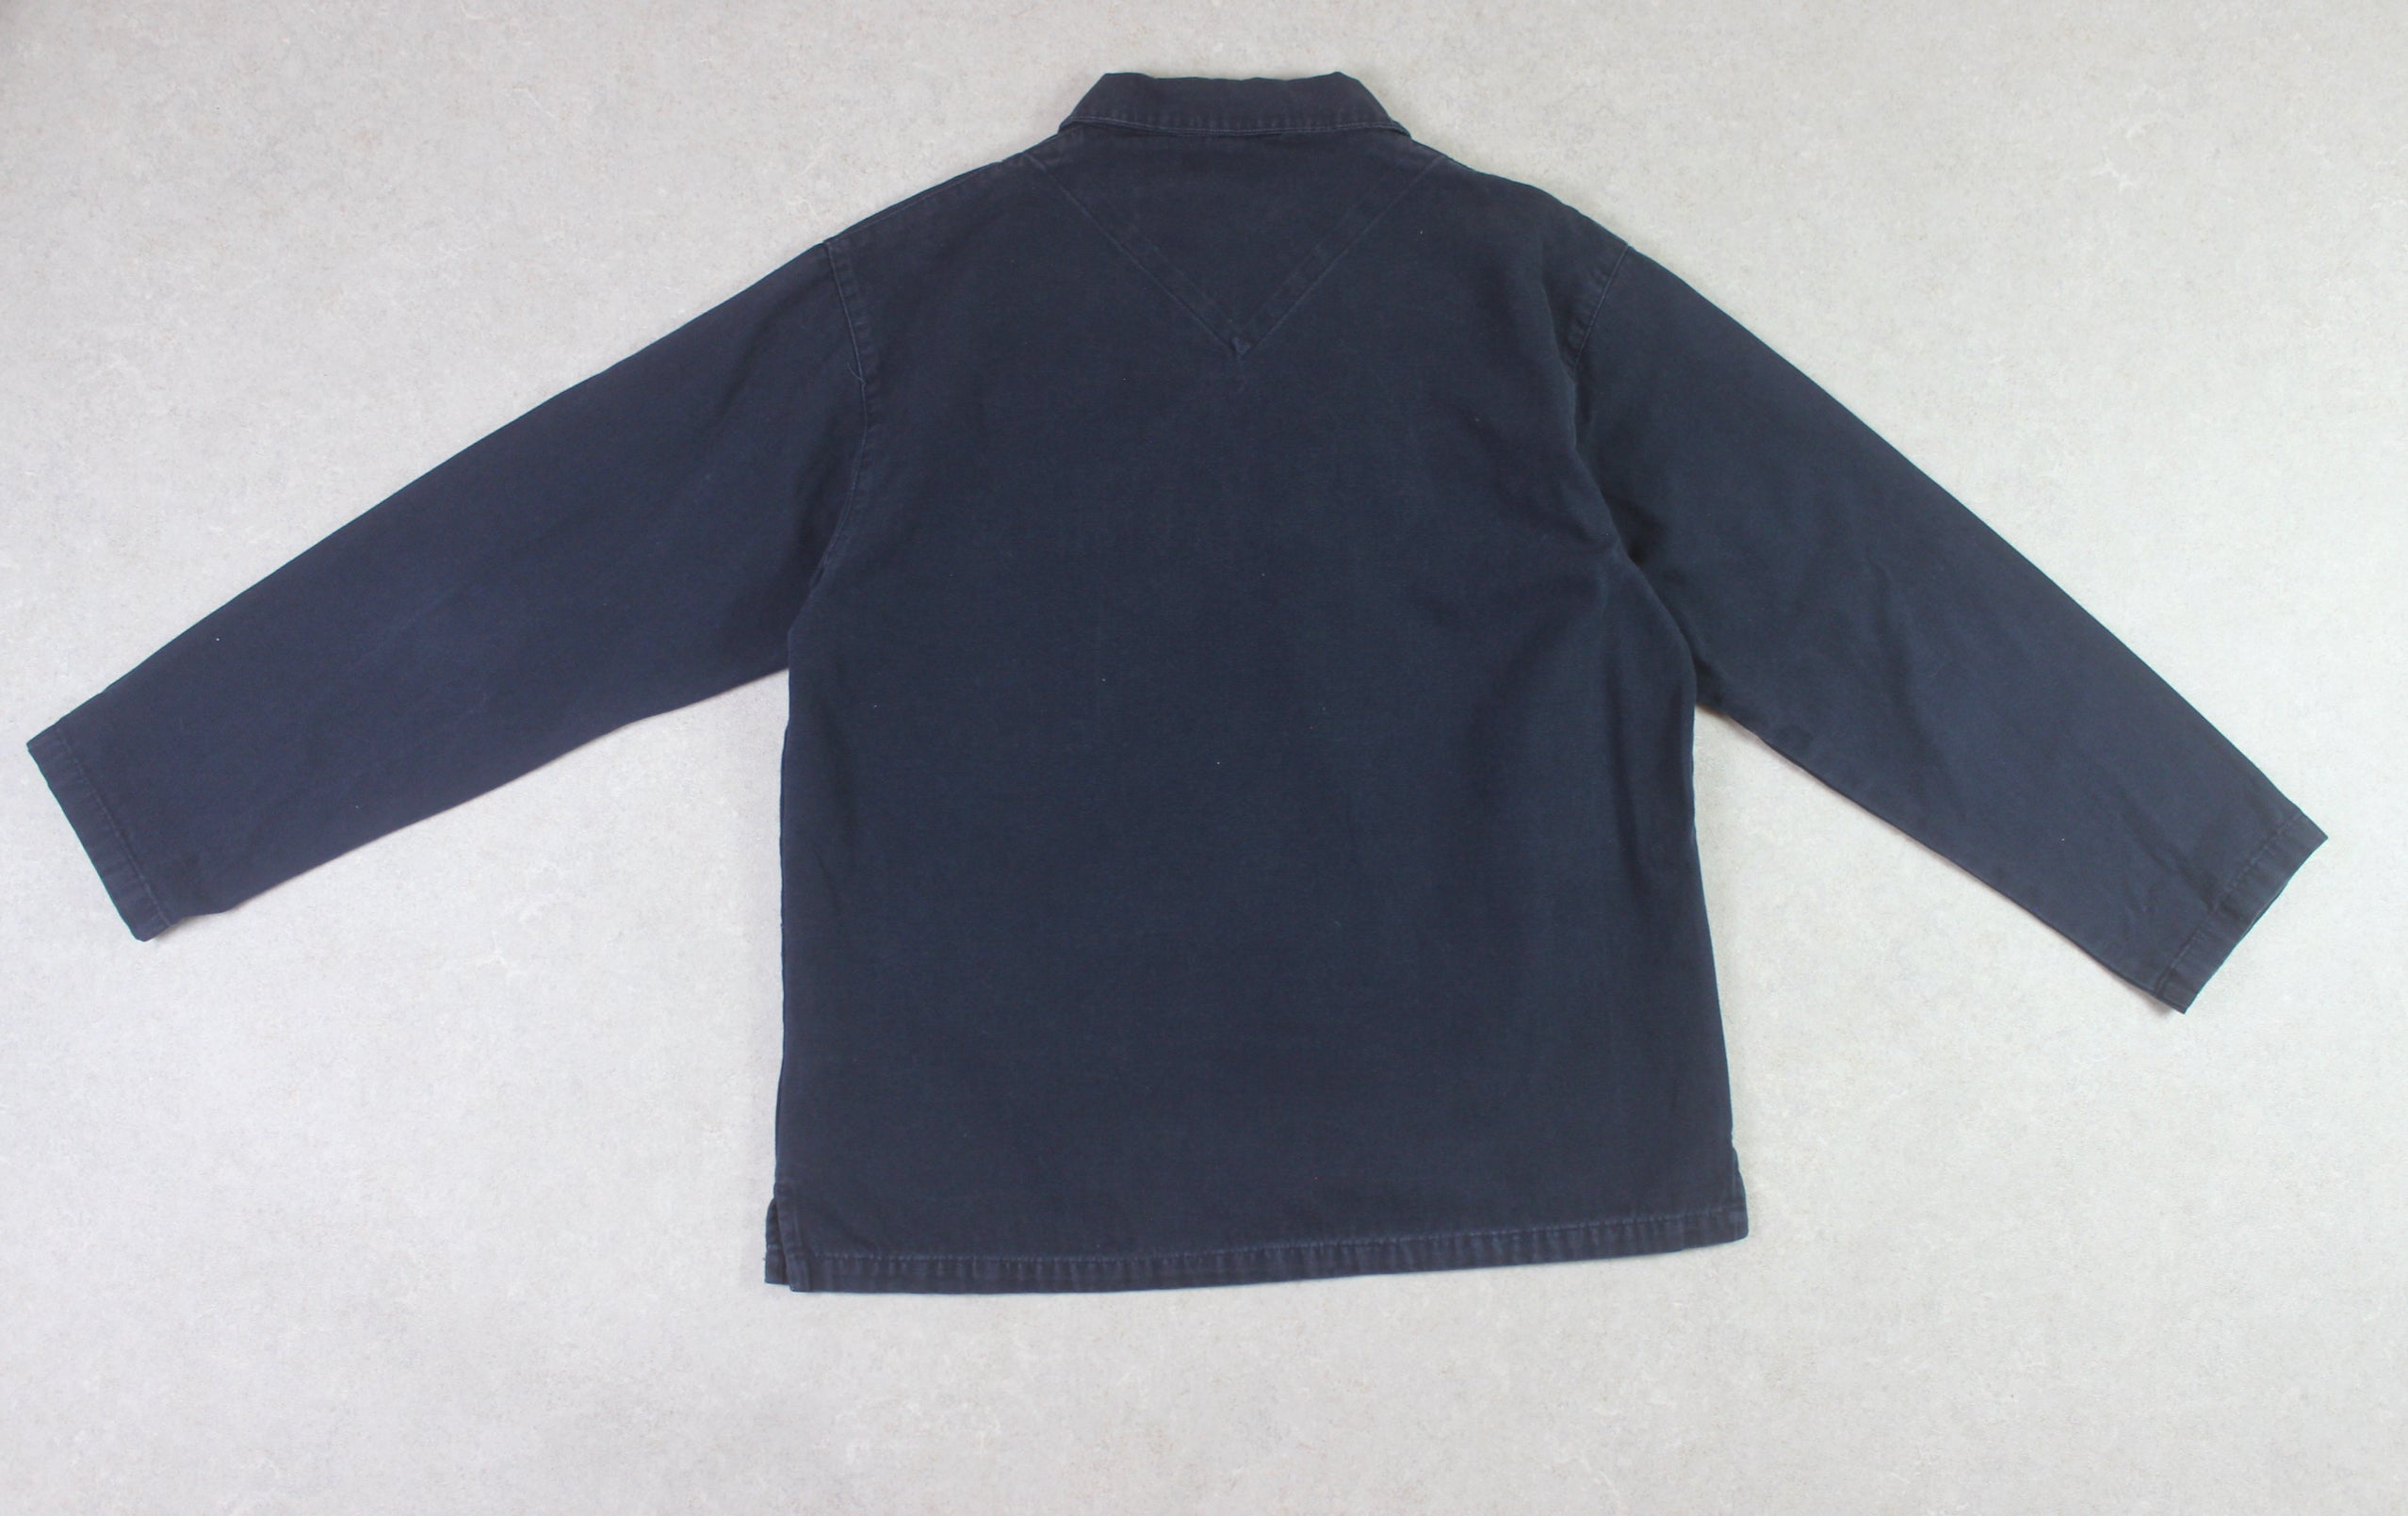 Armor Lux - Fisherman's Smock - Blue - Small